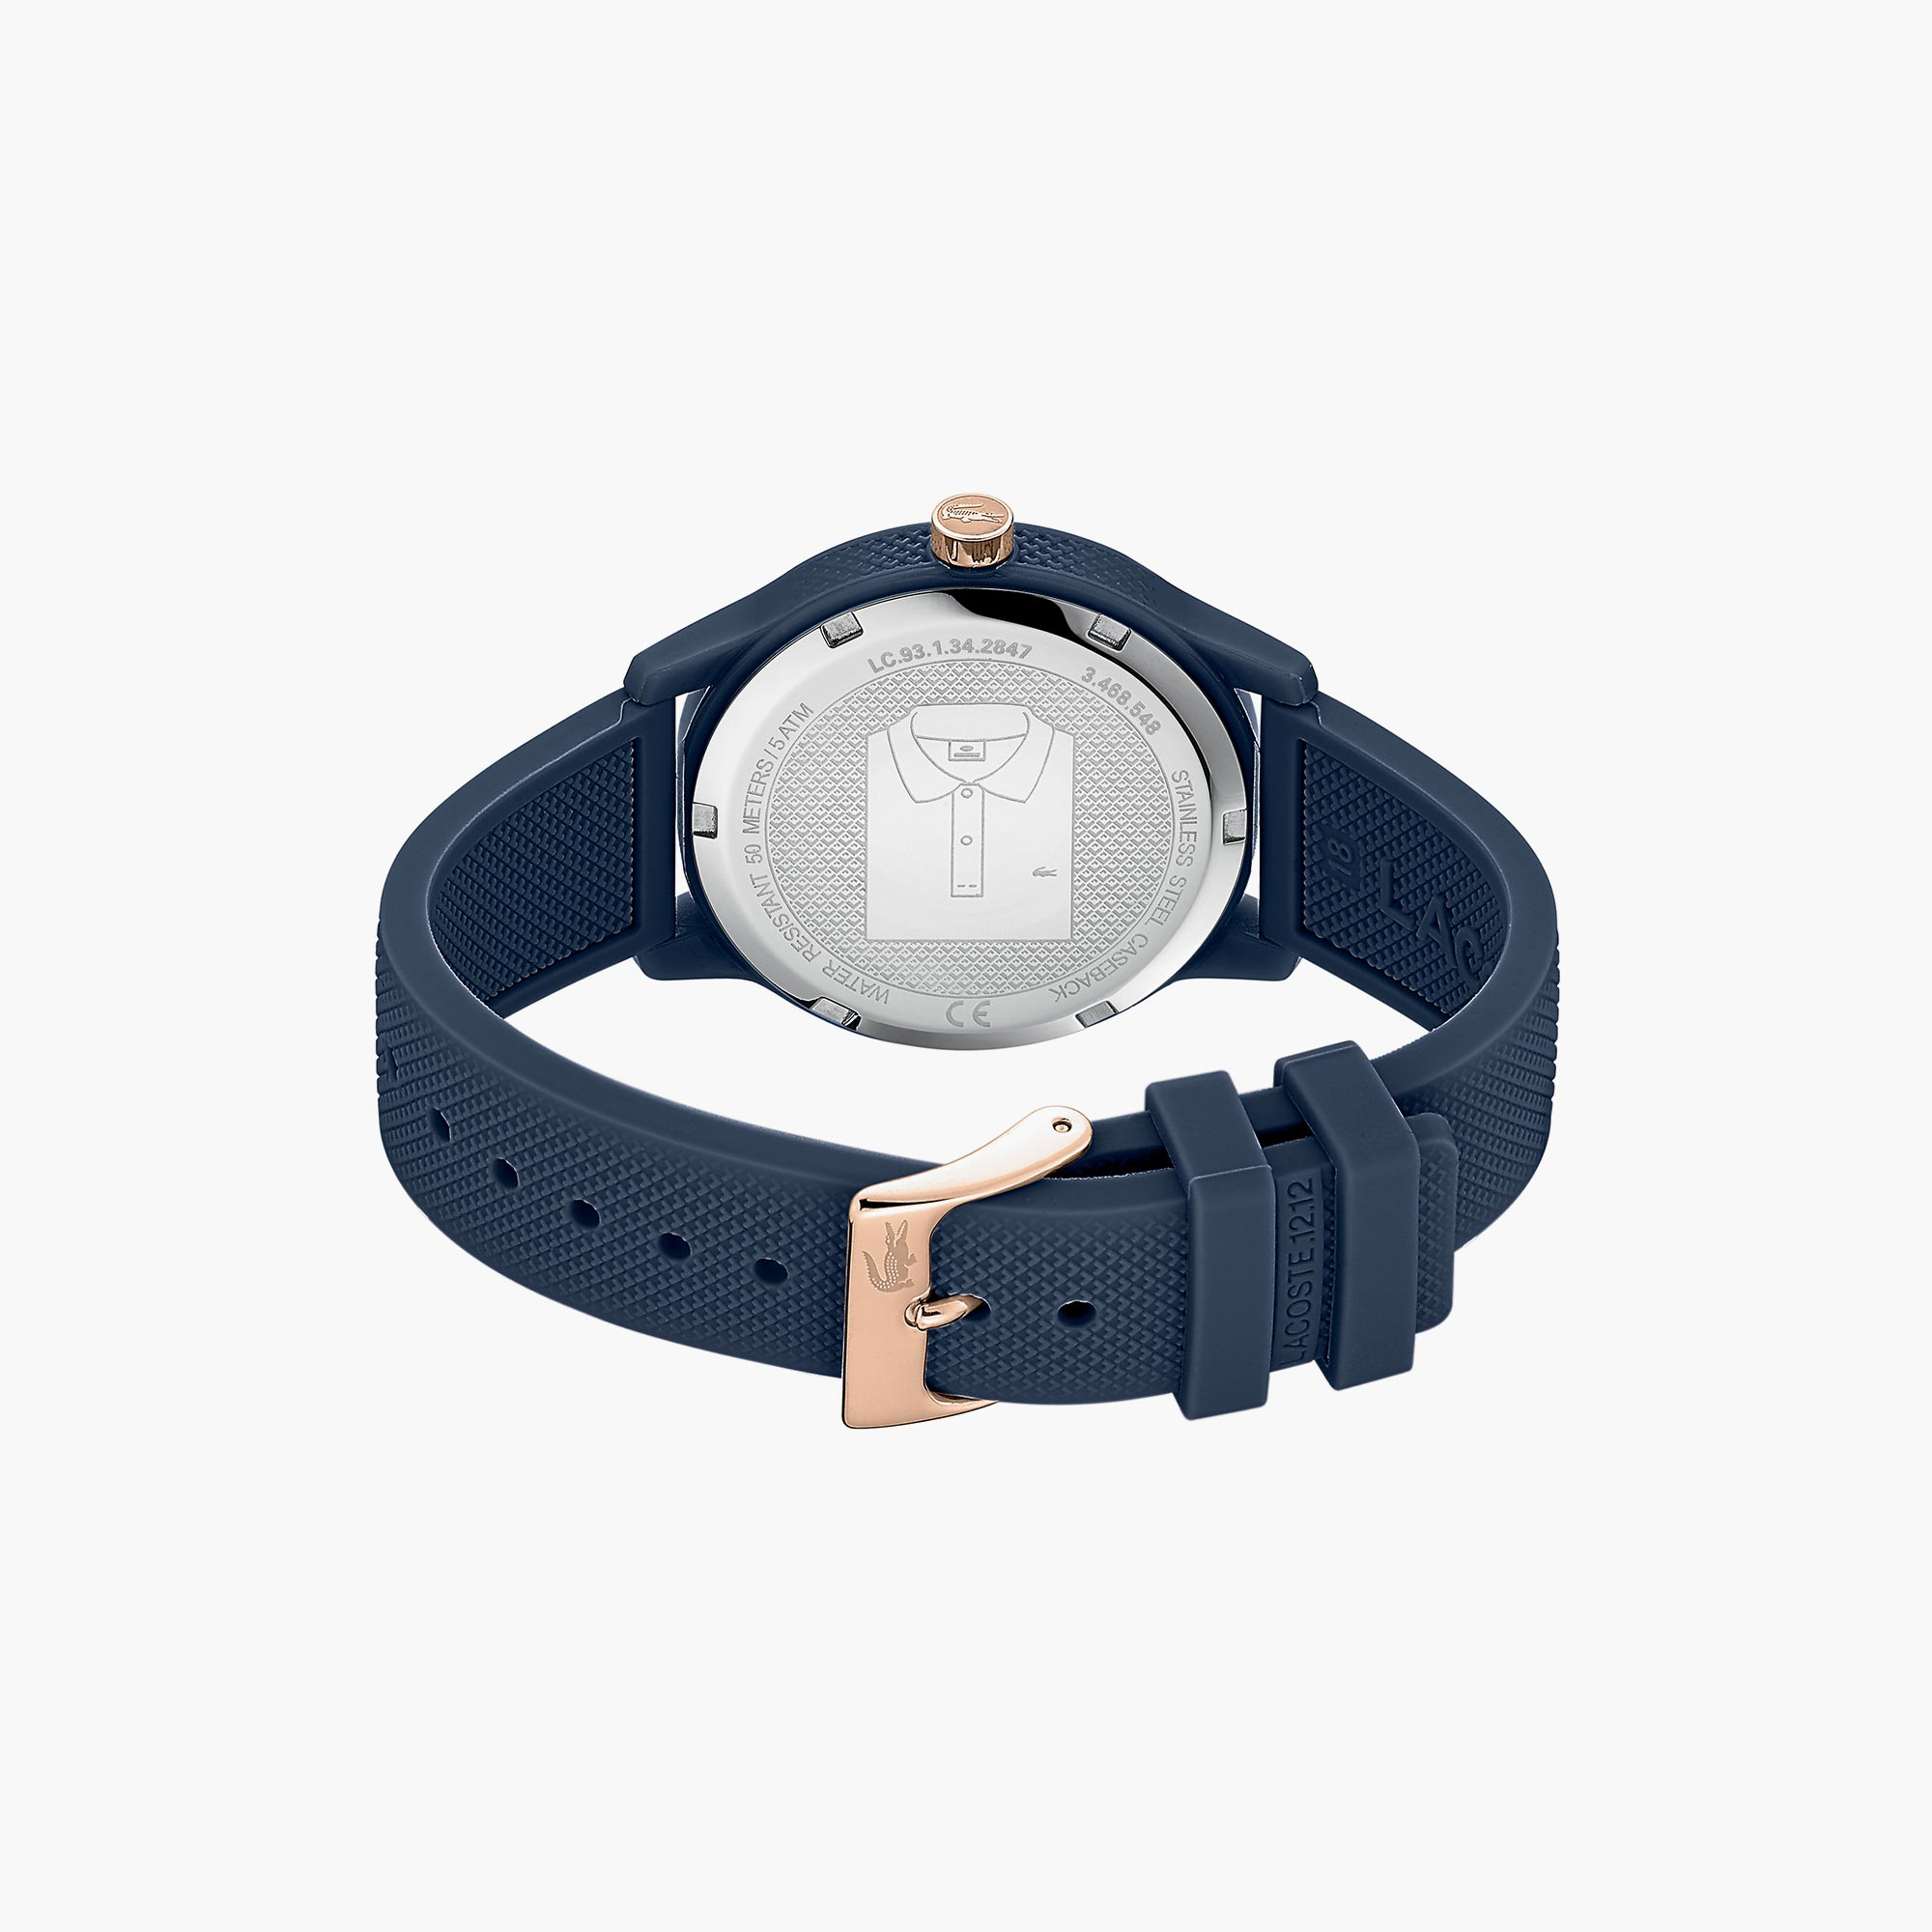 Gents Lacoste.12.12 Watch with Black Silicone Petit Piqué Pattern Strap